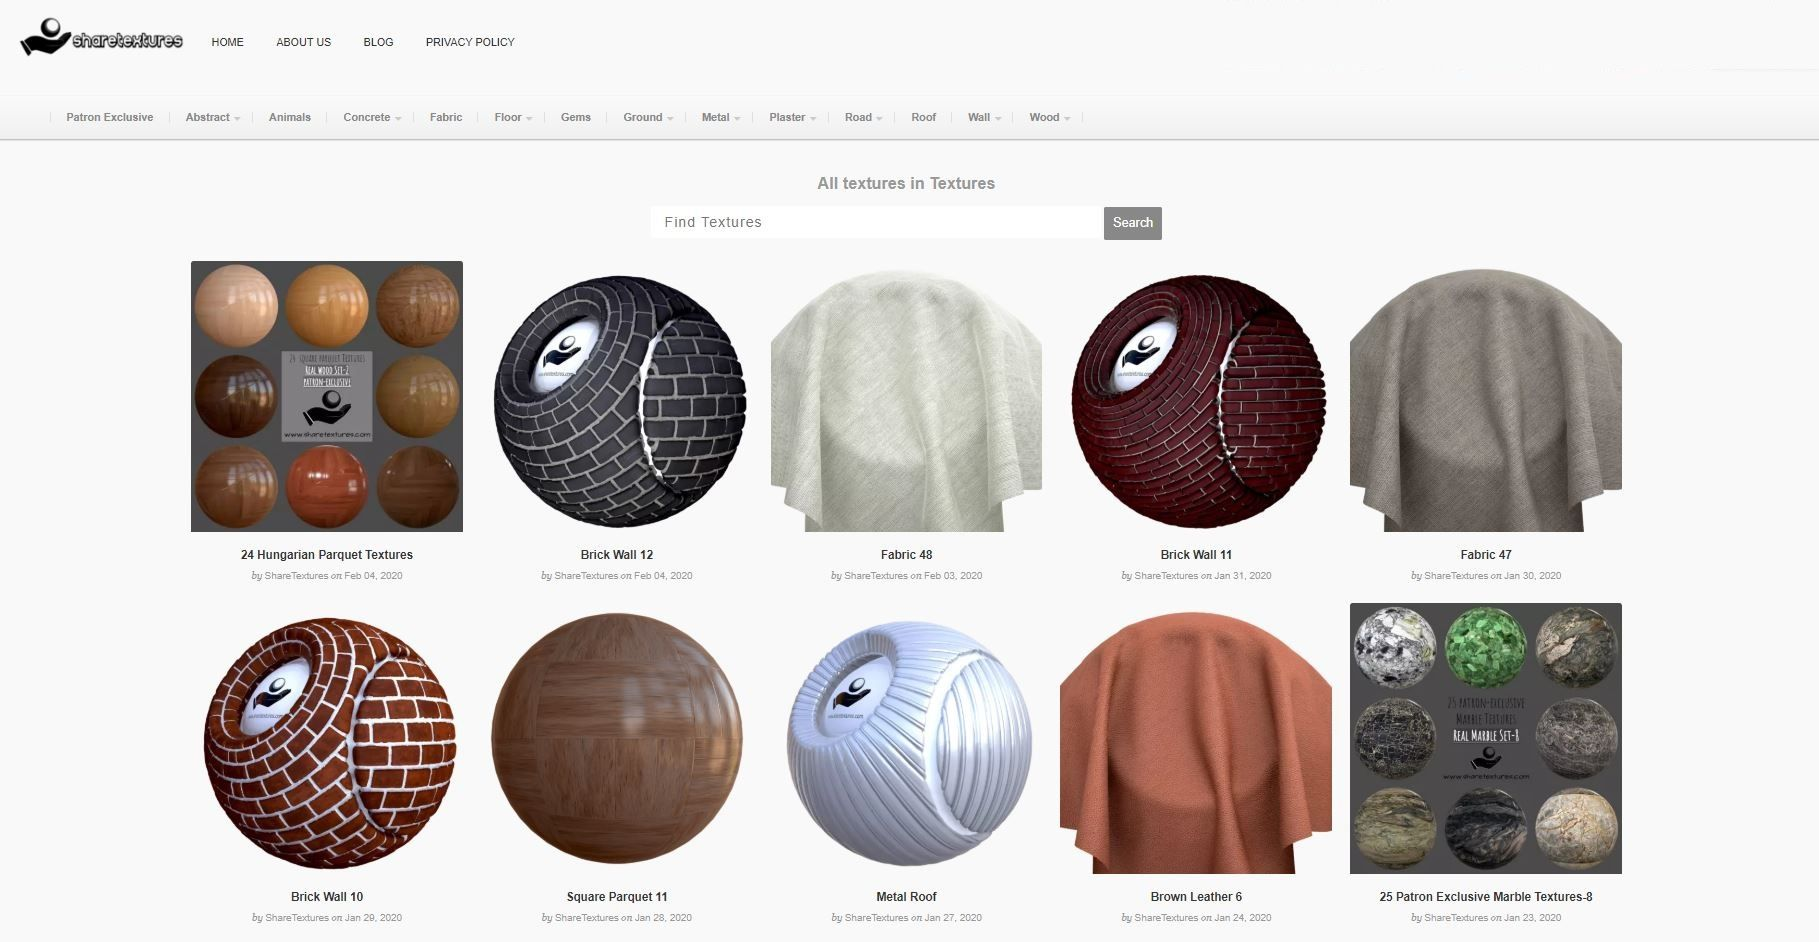 Free PBR Textures ShareTextures in 2020 Free textures